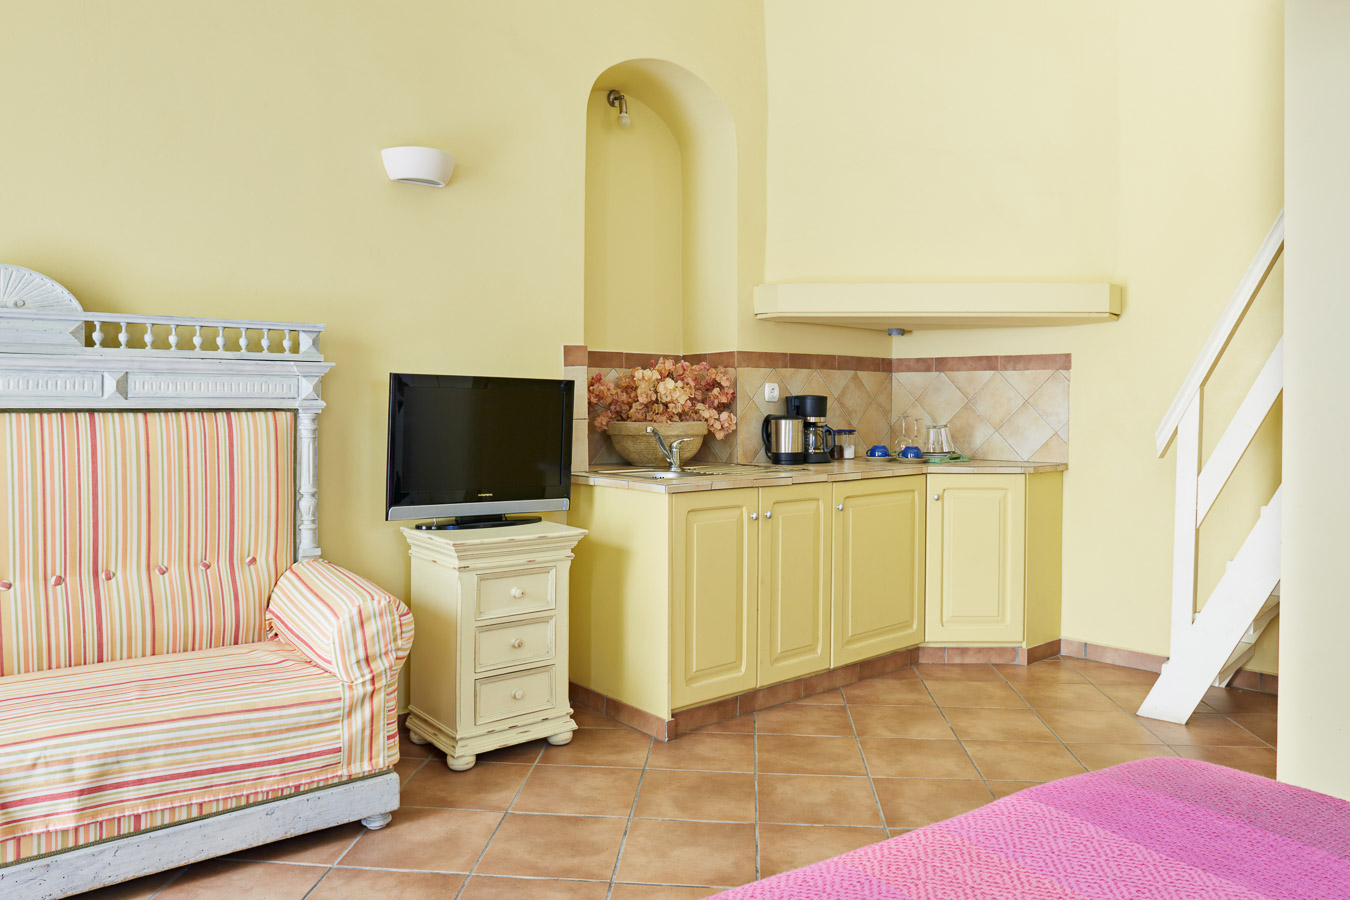 Blue and Yellow Mezzanine Studio – Accommodation – Lila Guesthouse ...